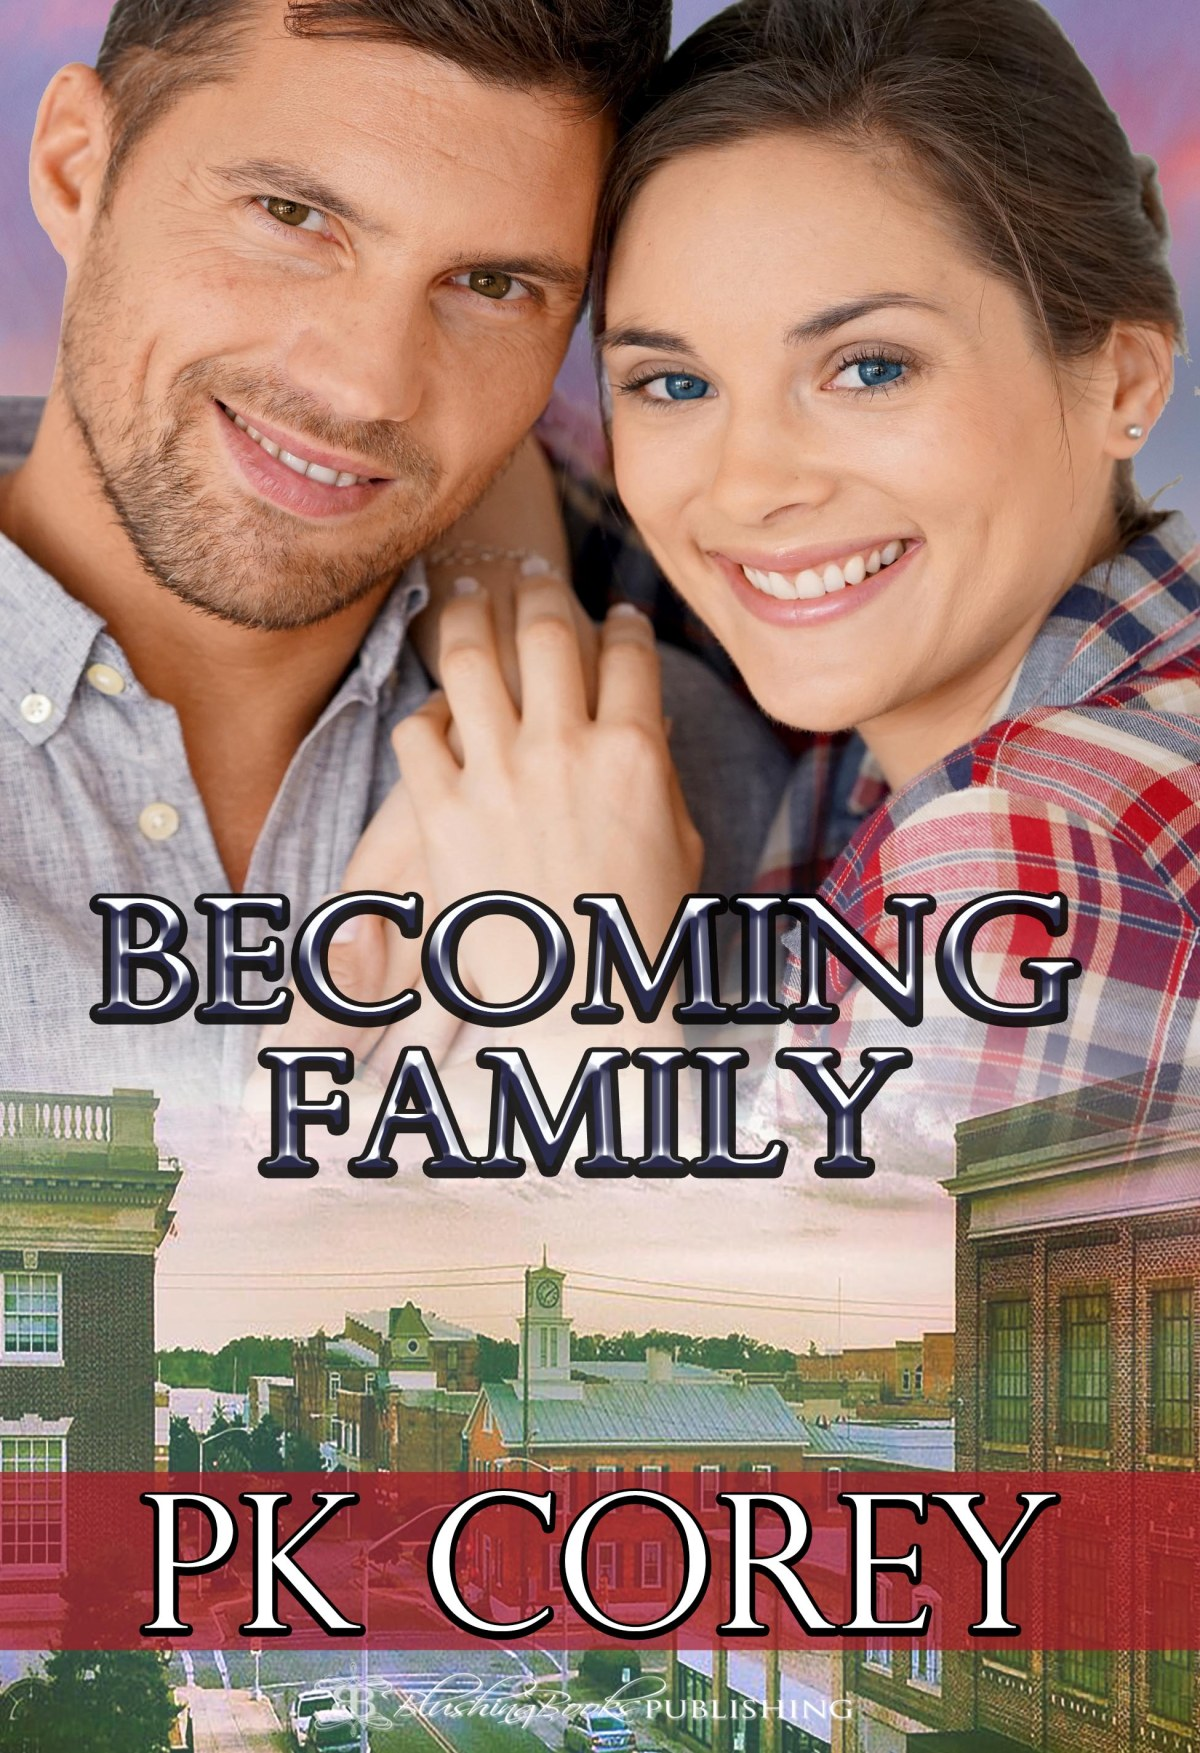 Becoming Family by PK Corey.